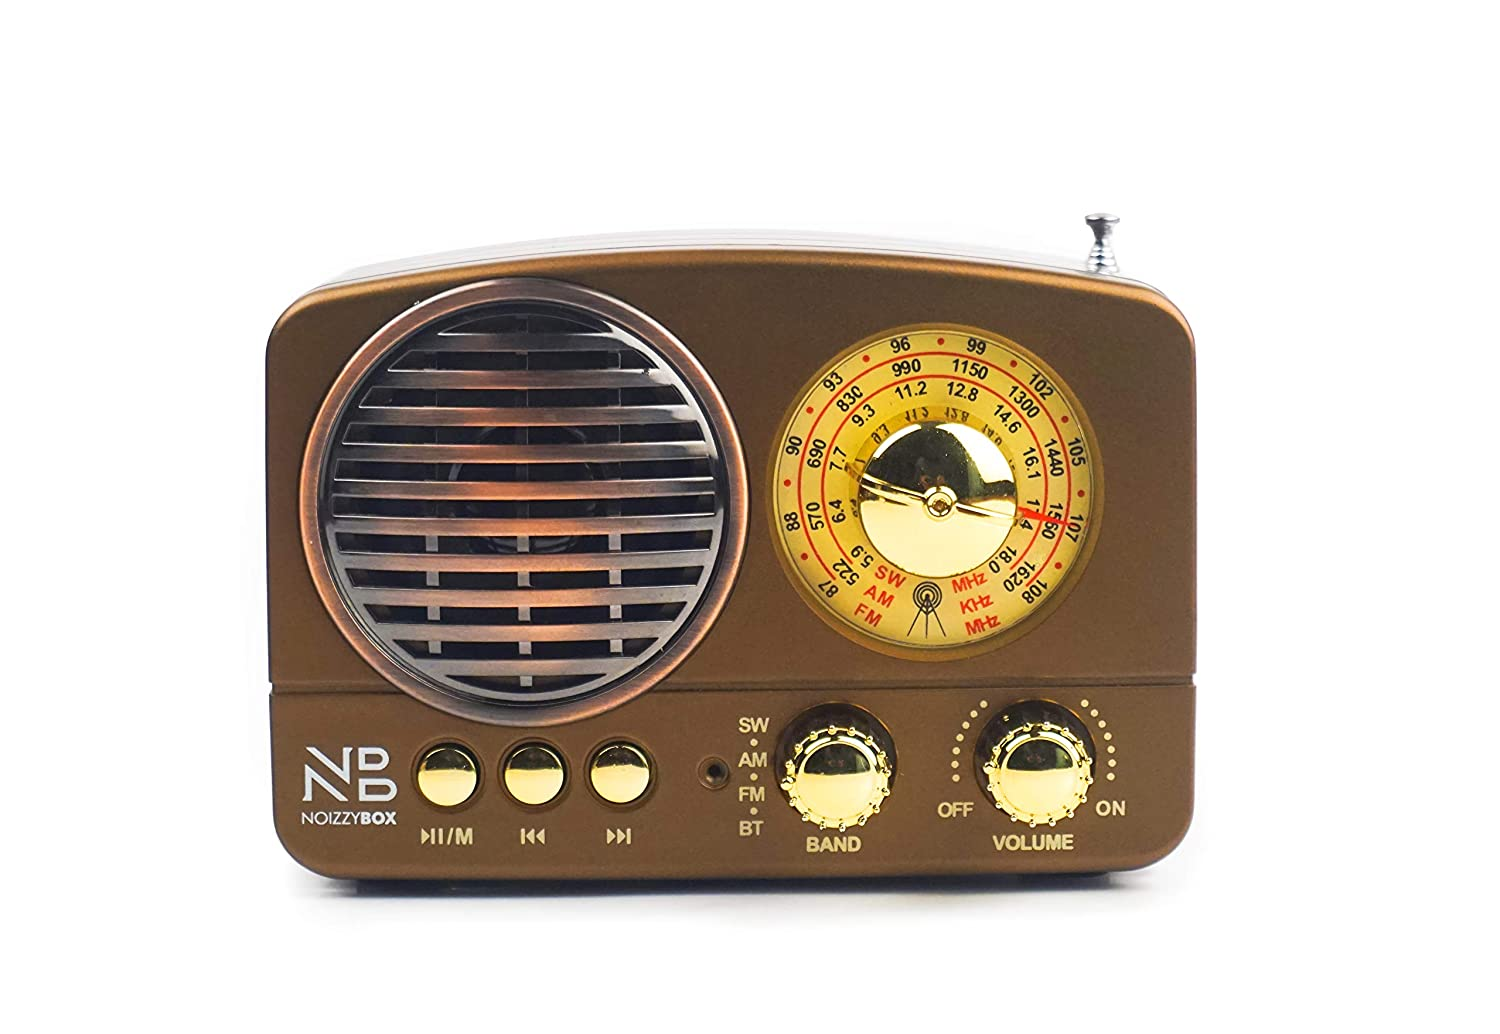 Noizzy Box Retro XS Vintage Classic Portable Bluetooth Speaker with LED Light/Display/FM Radio/Support Micro TF SD Card/USB Input, AUX Line-in (Brown) Featured Image